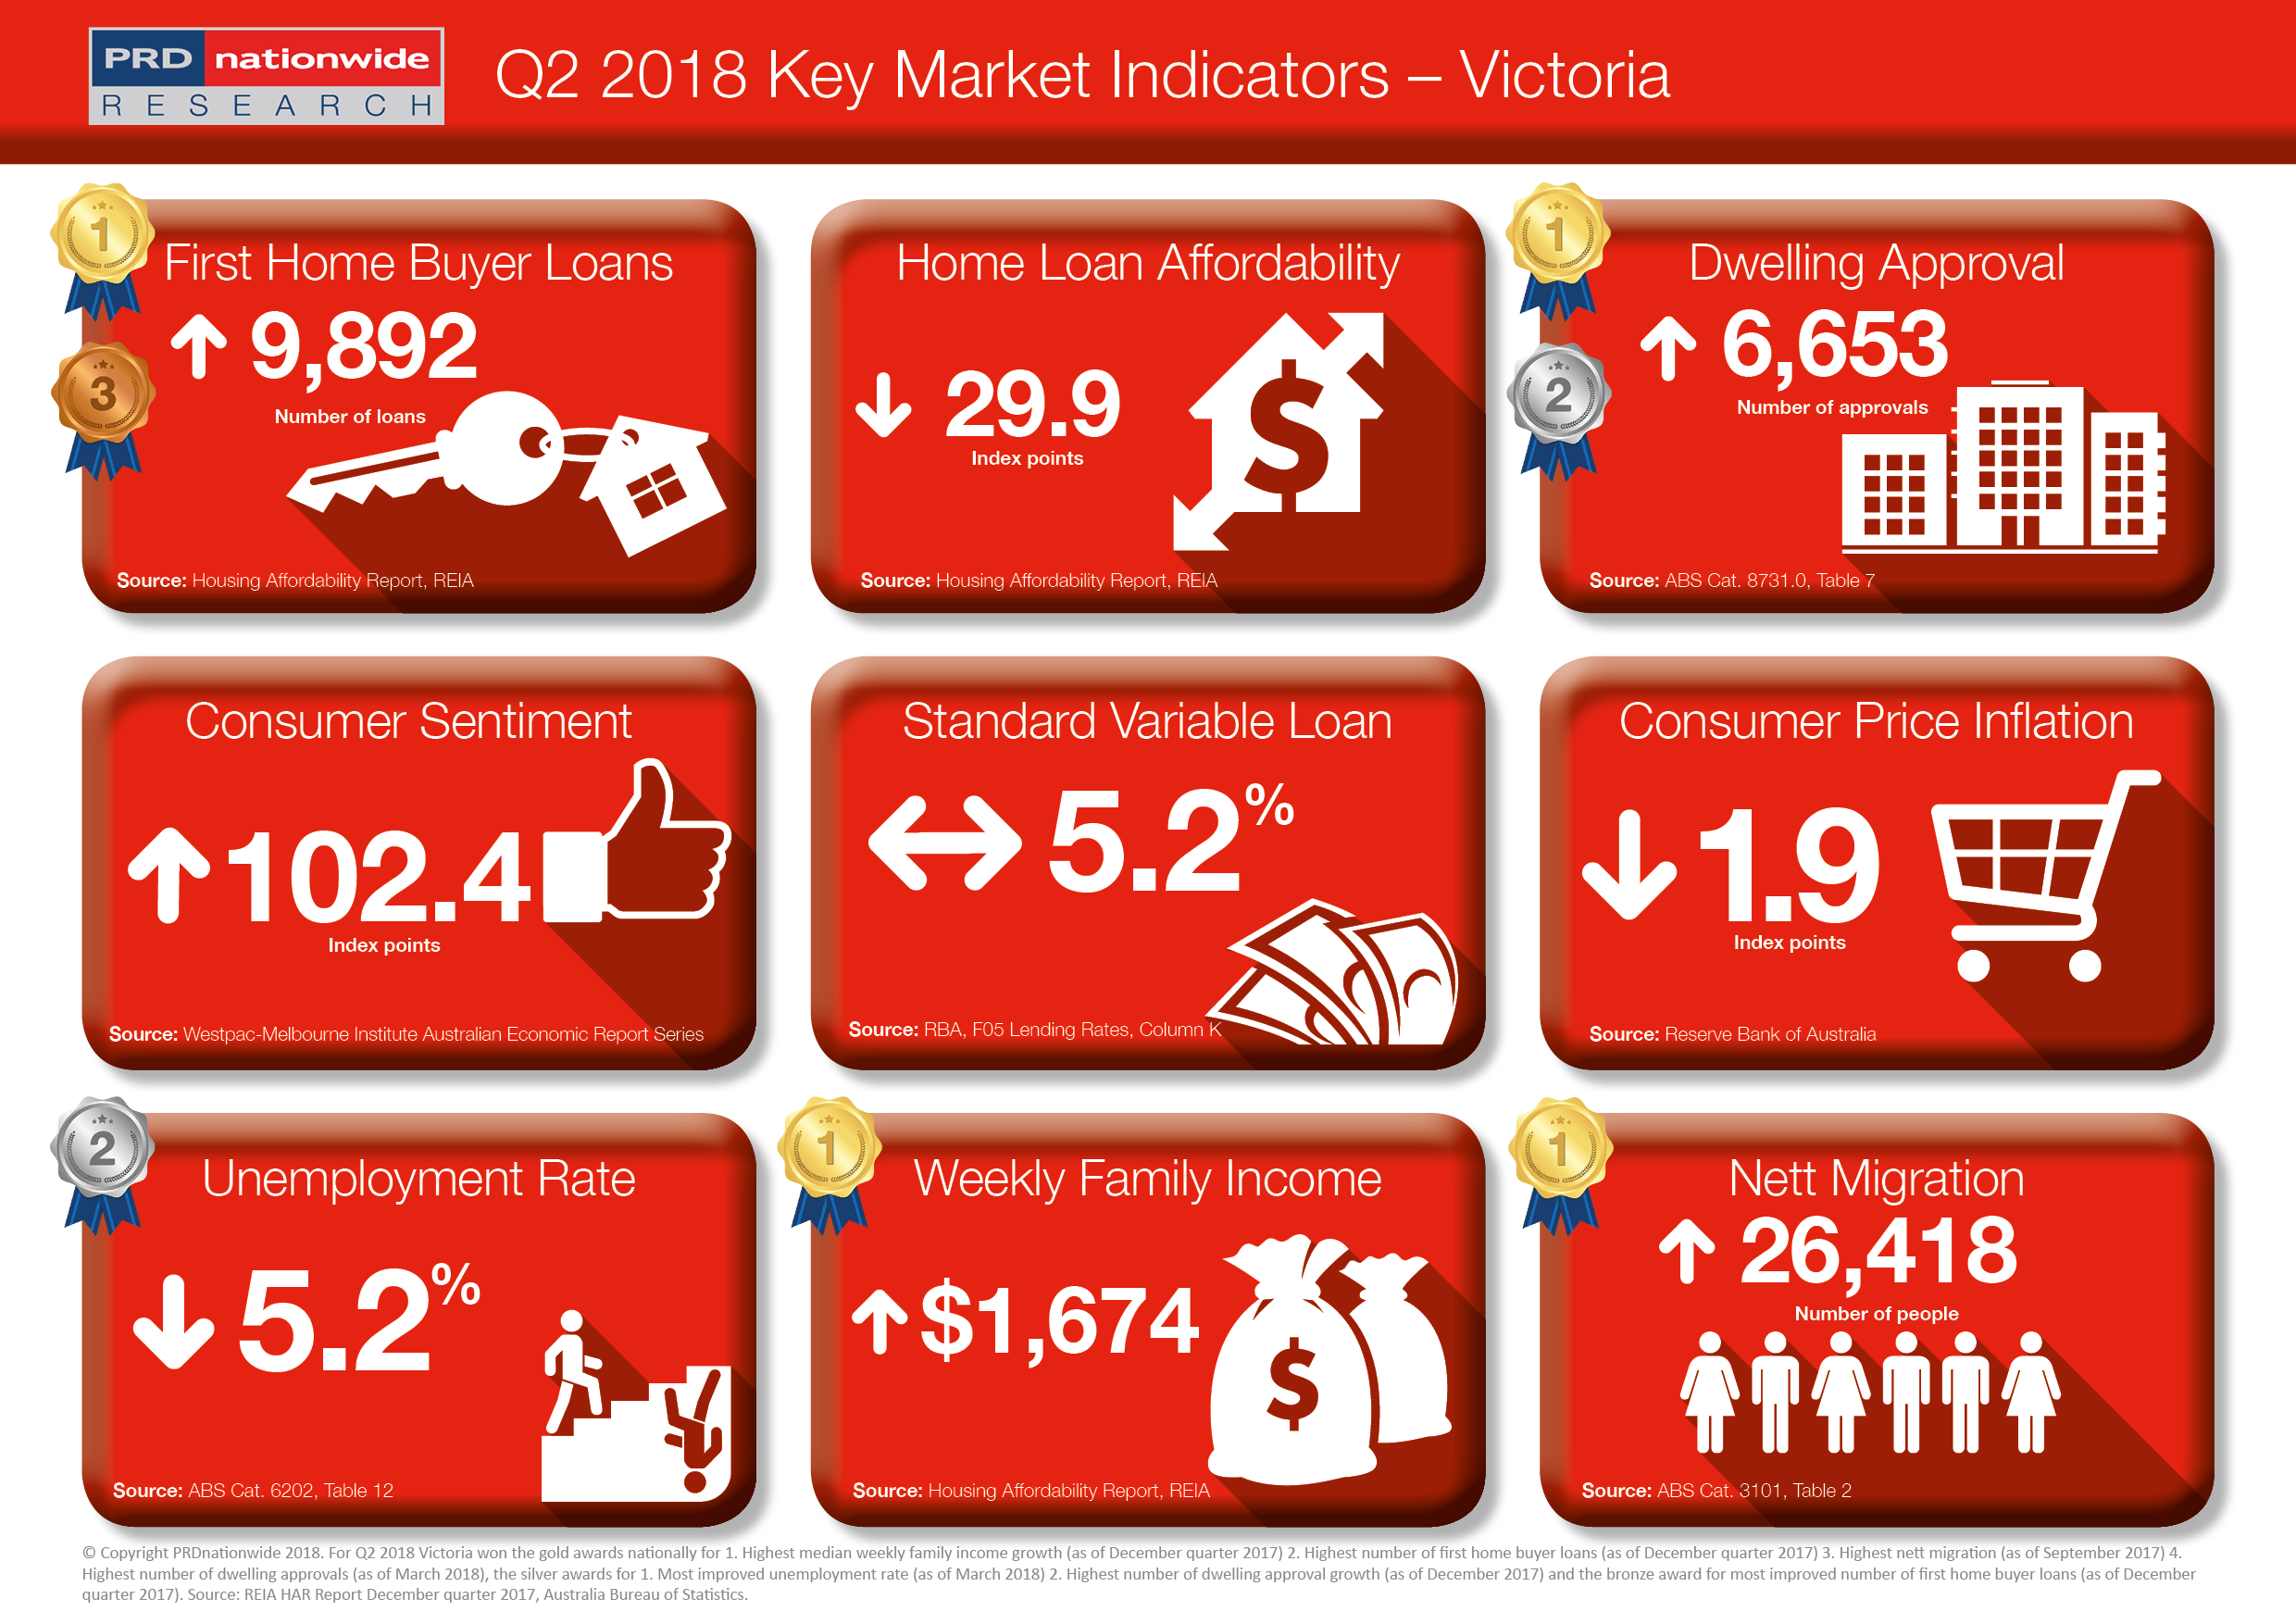 PRDnationwide Q2 Key Market Indicators 2018 - VIC.png